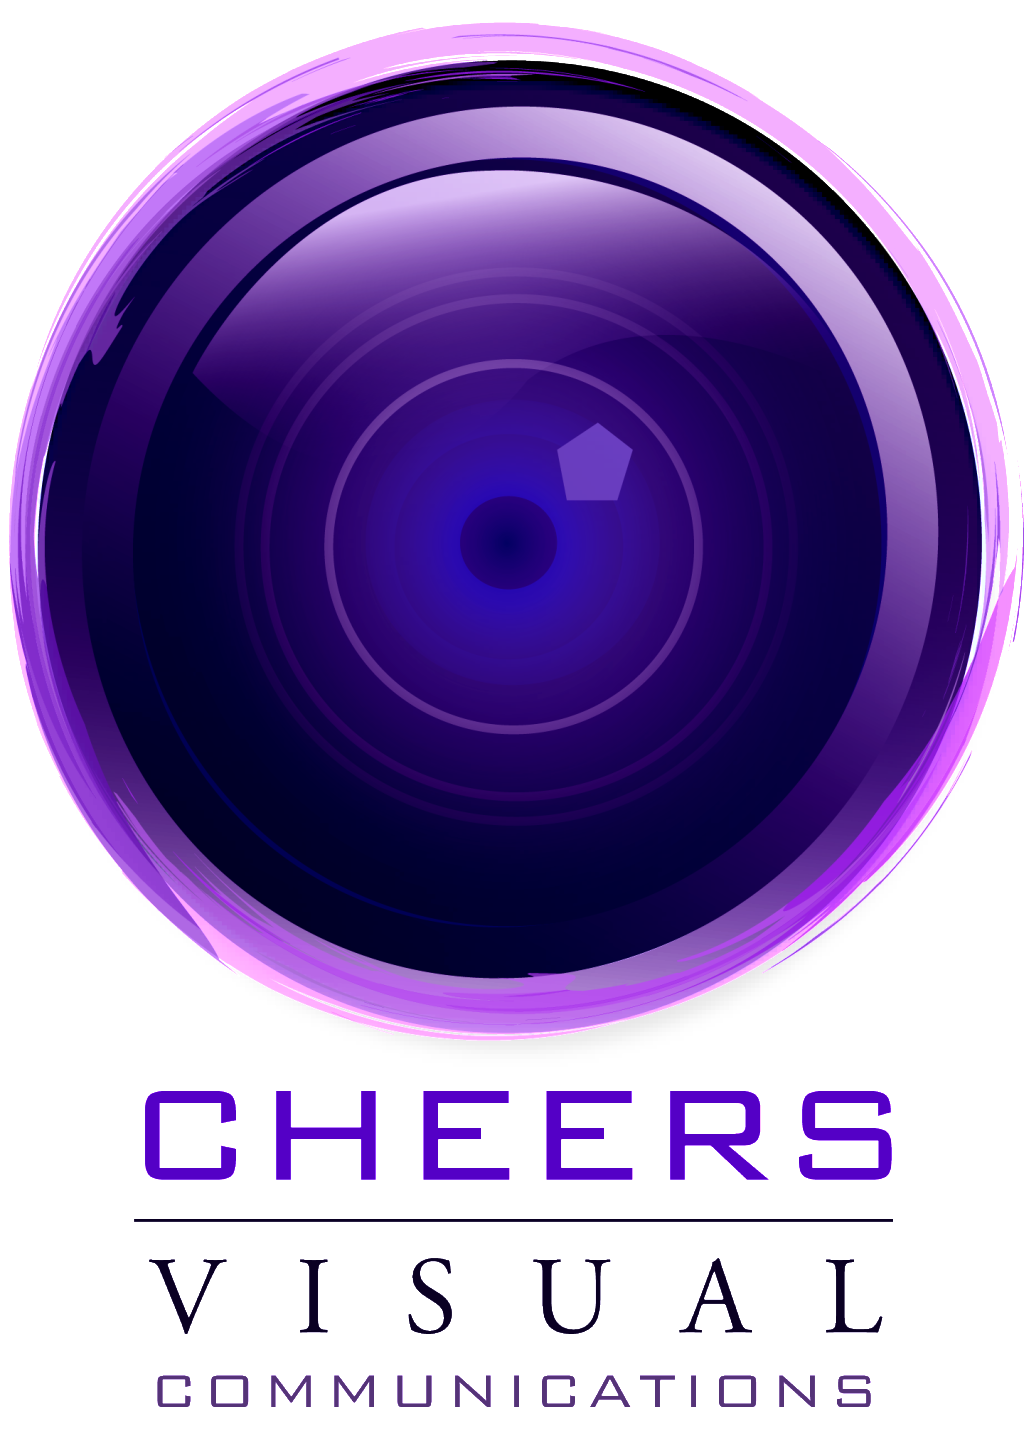 Cheers-Visual-Communications.png